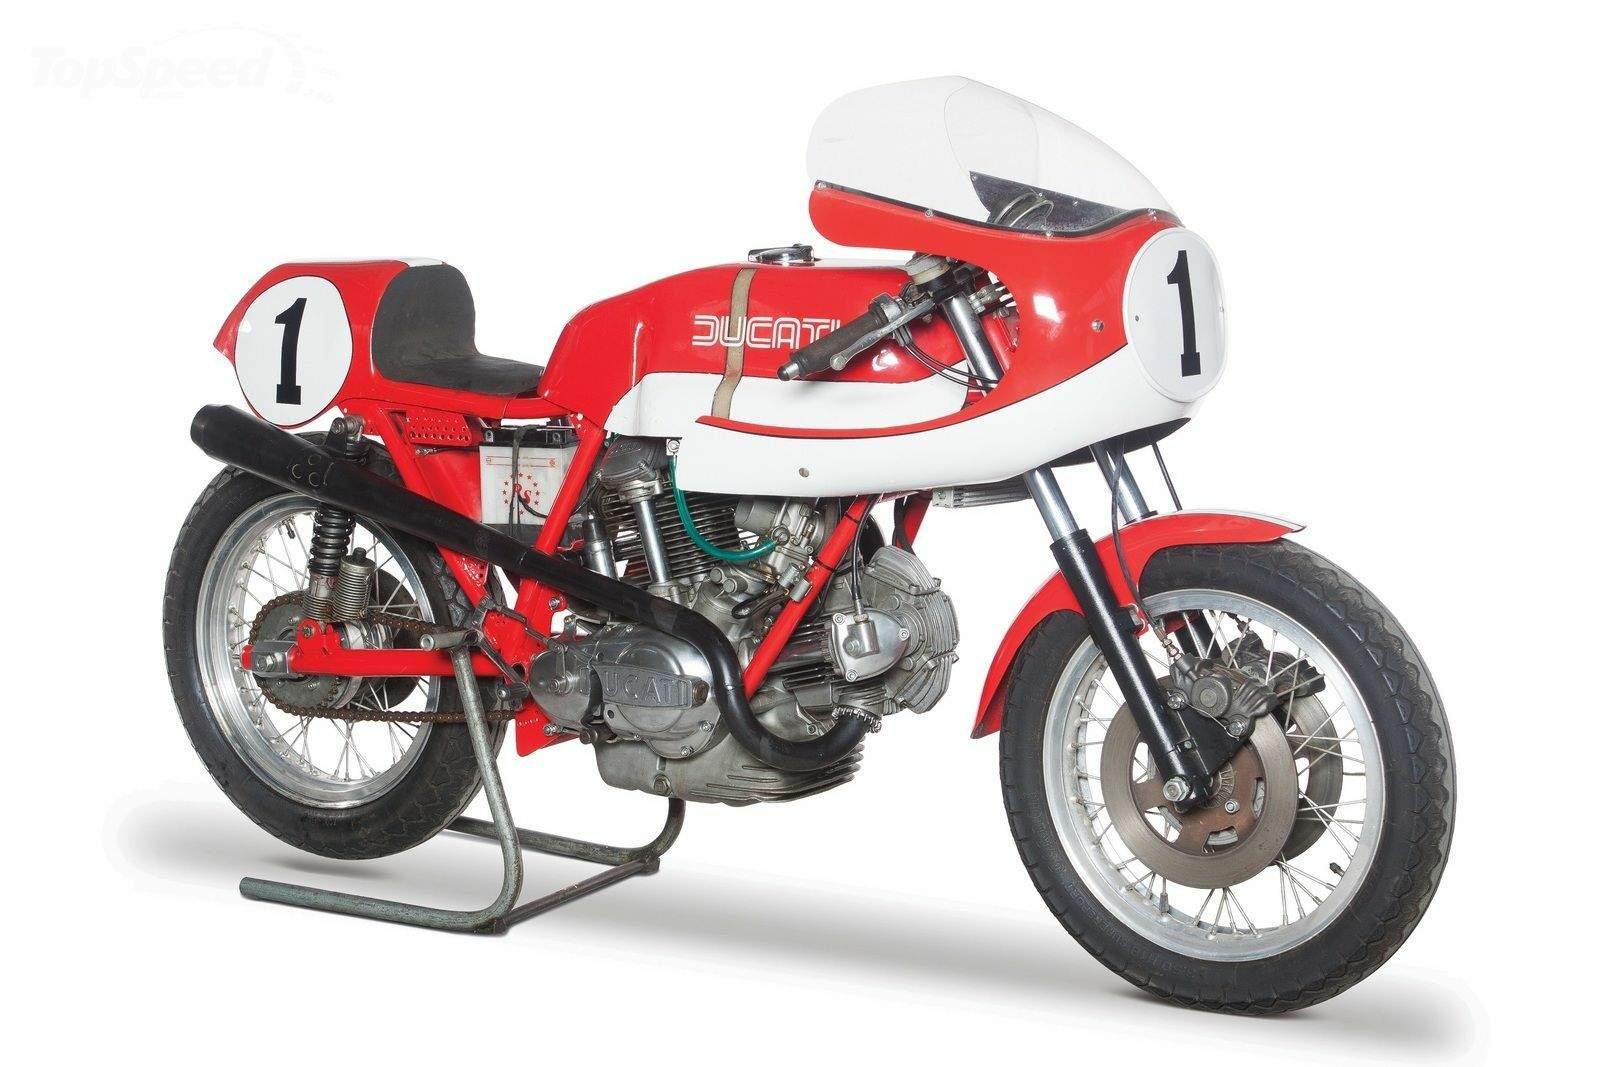 Ducati 750SS Corsa For Sale Specifications, Price and Images